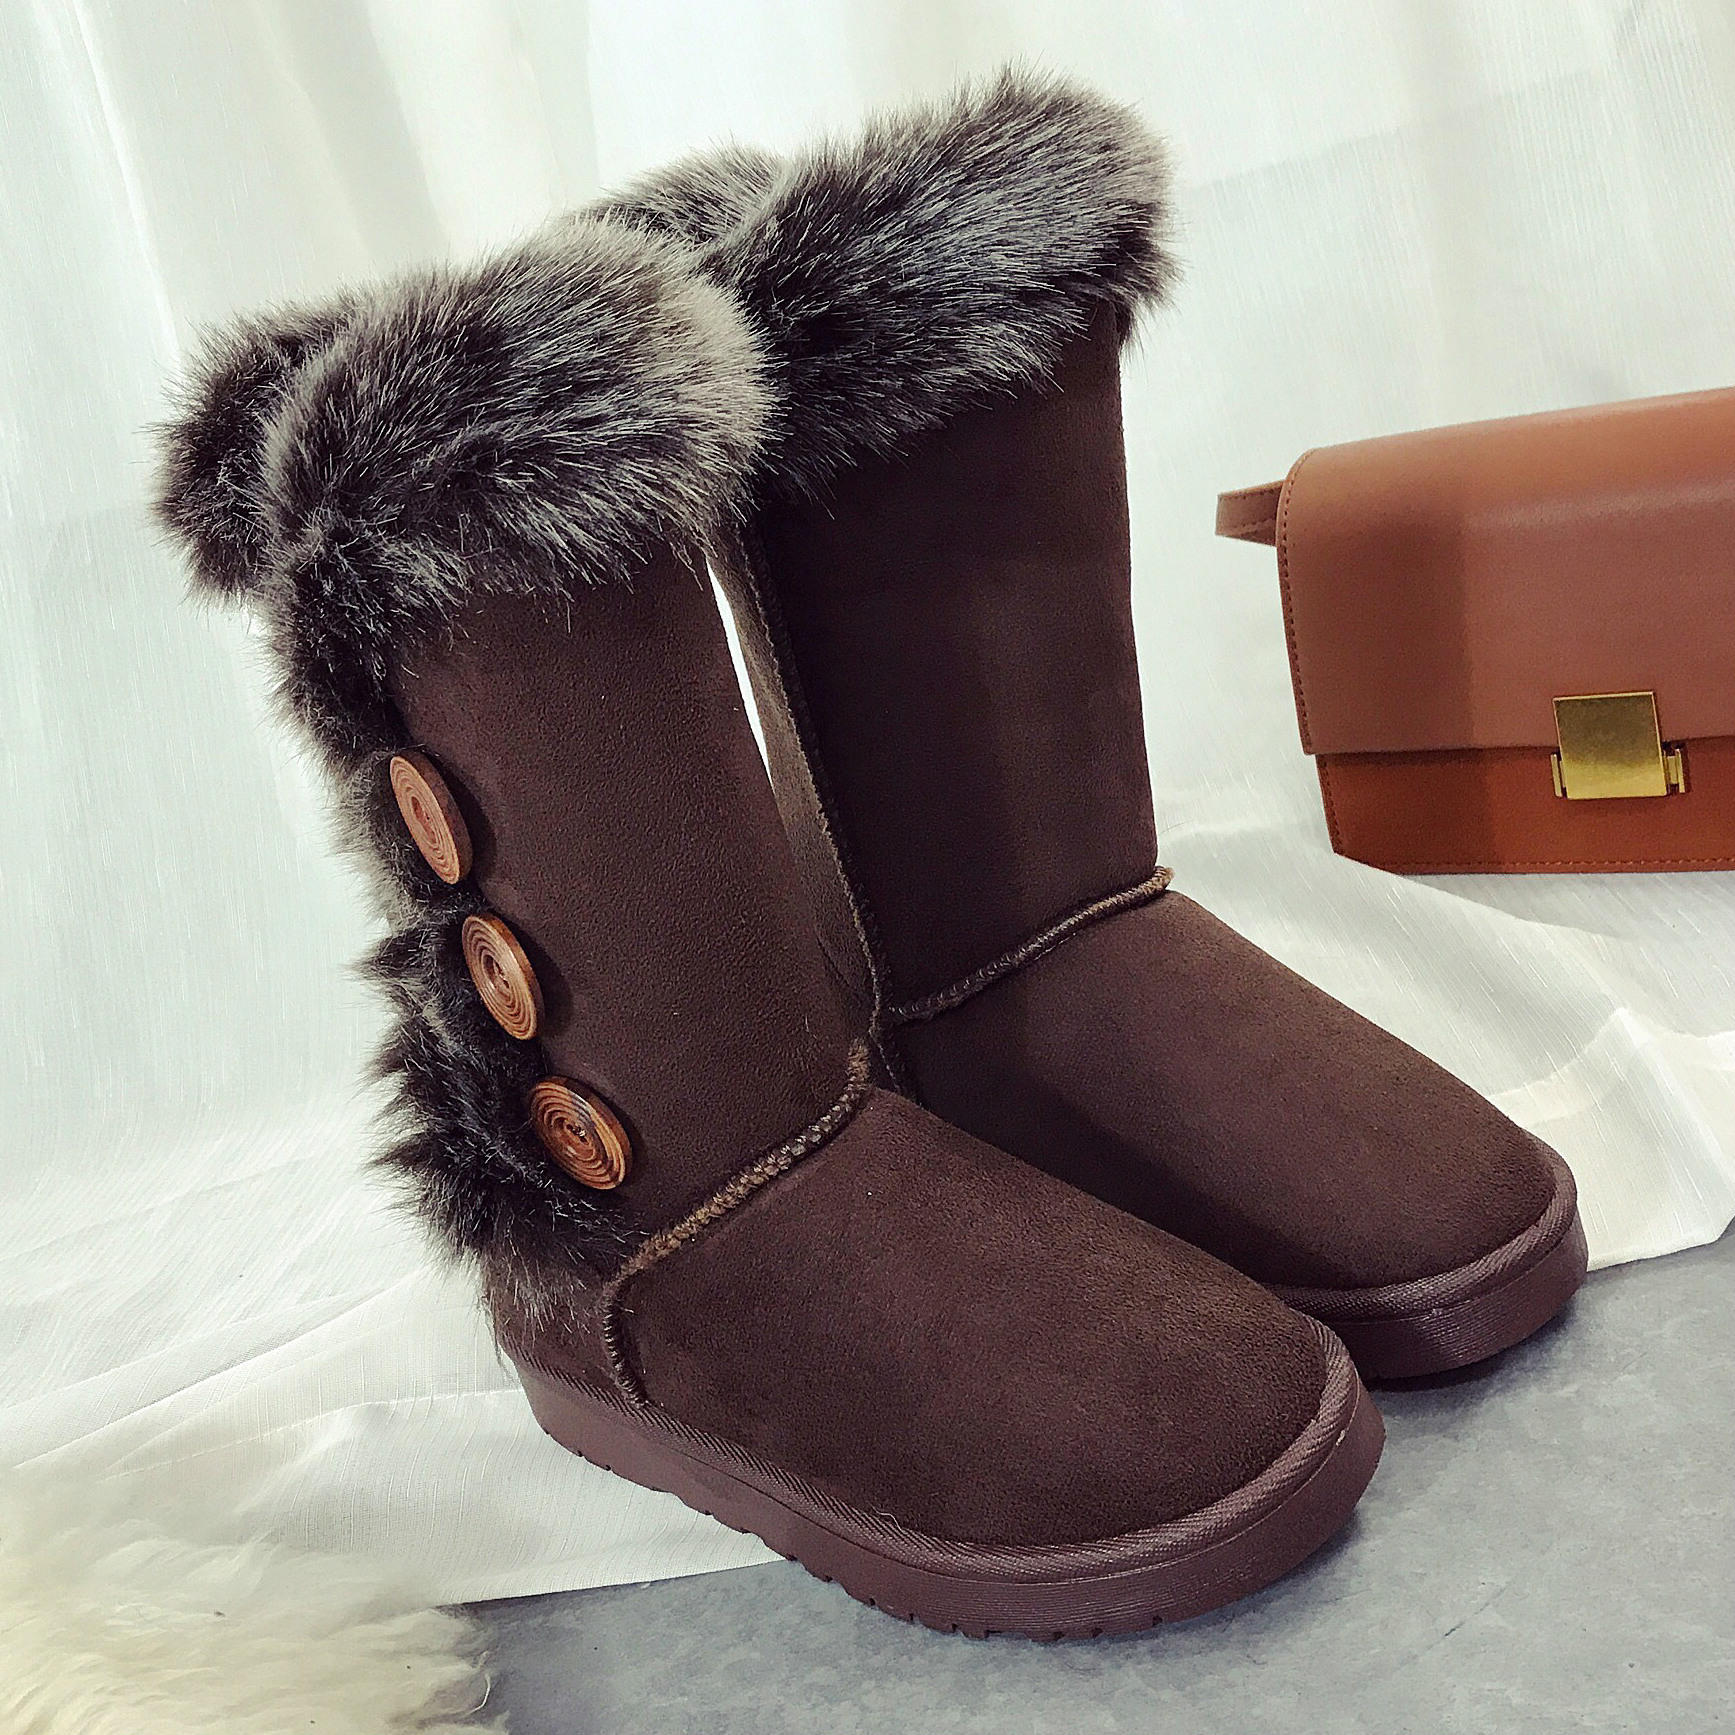 2017 -06 Women Winter Shoes Soft Comfortable Cotton fur Snow Boots High Quality Female Footwear Ankle Boots Ladies button UGS03 spring autumn boots women soft footwear classic boots female comfortable outdoor shoes aa20131